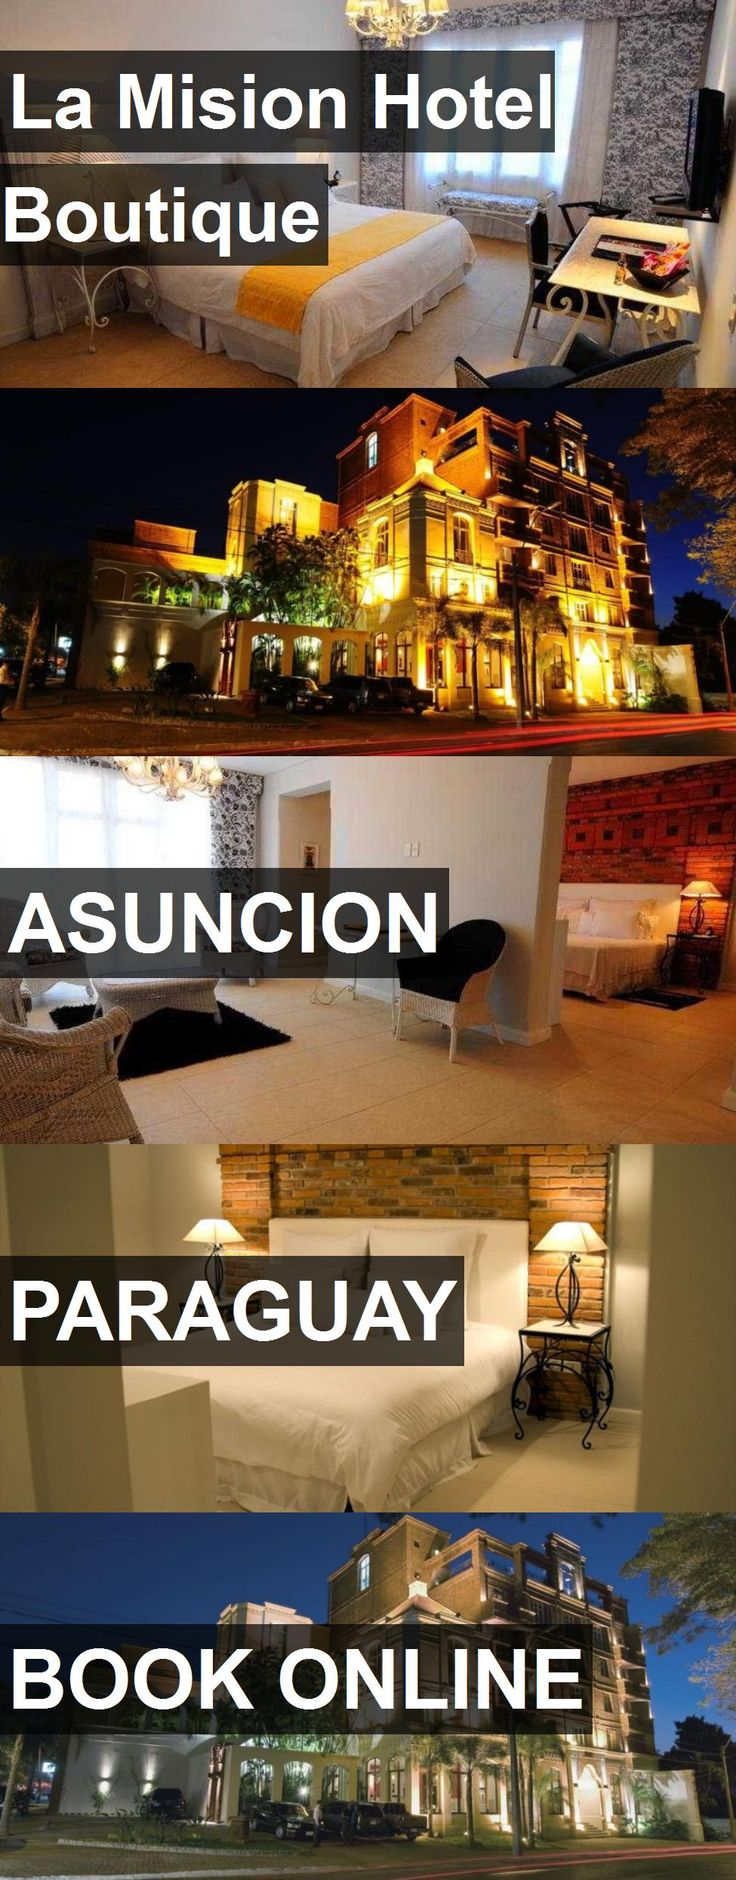 La Mision Hotel Boutique in Asuncion, Paraguay. For more information, photos, reviews and best prices please follow the link. #Paraguay #Asuncion #travel #vacation #hotel